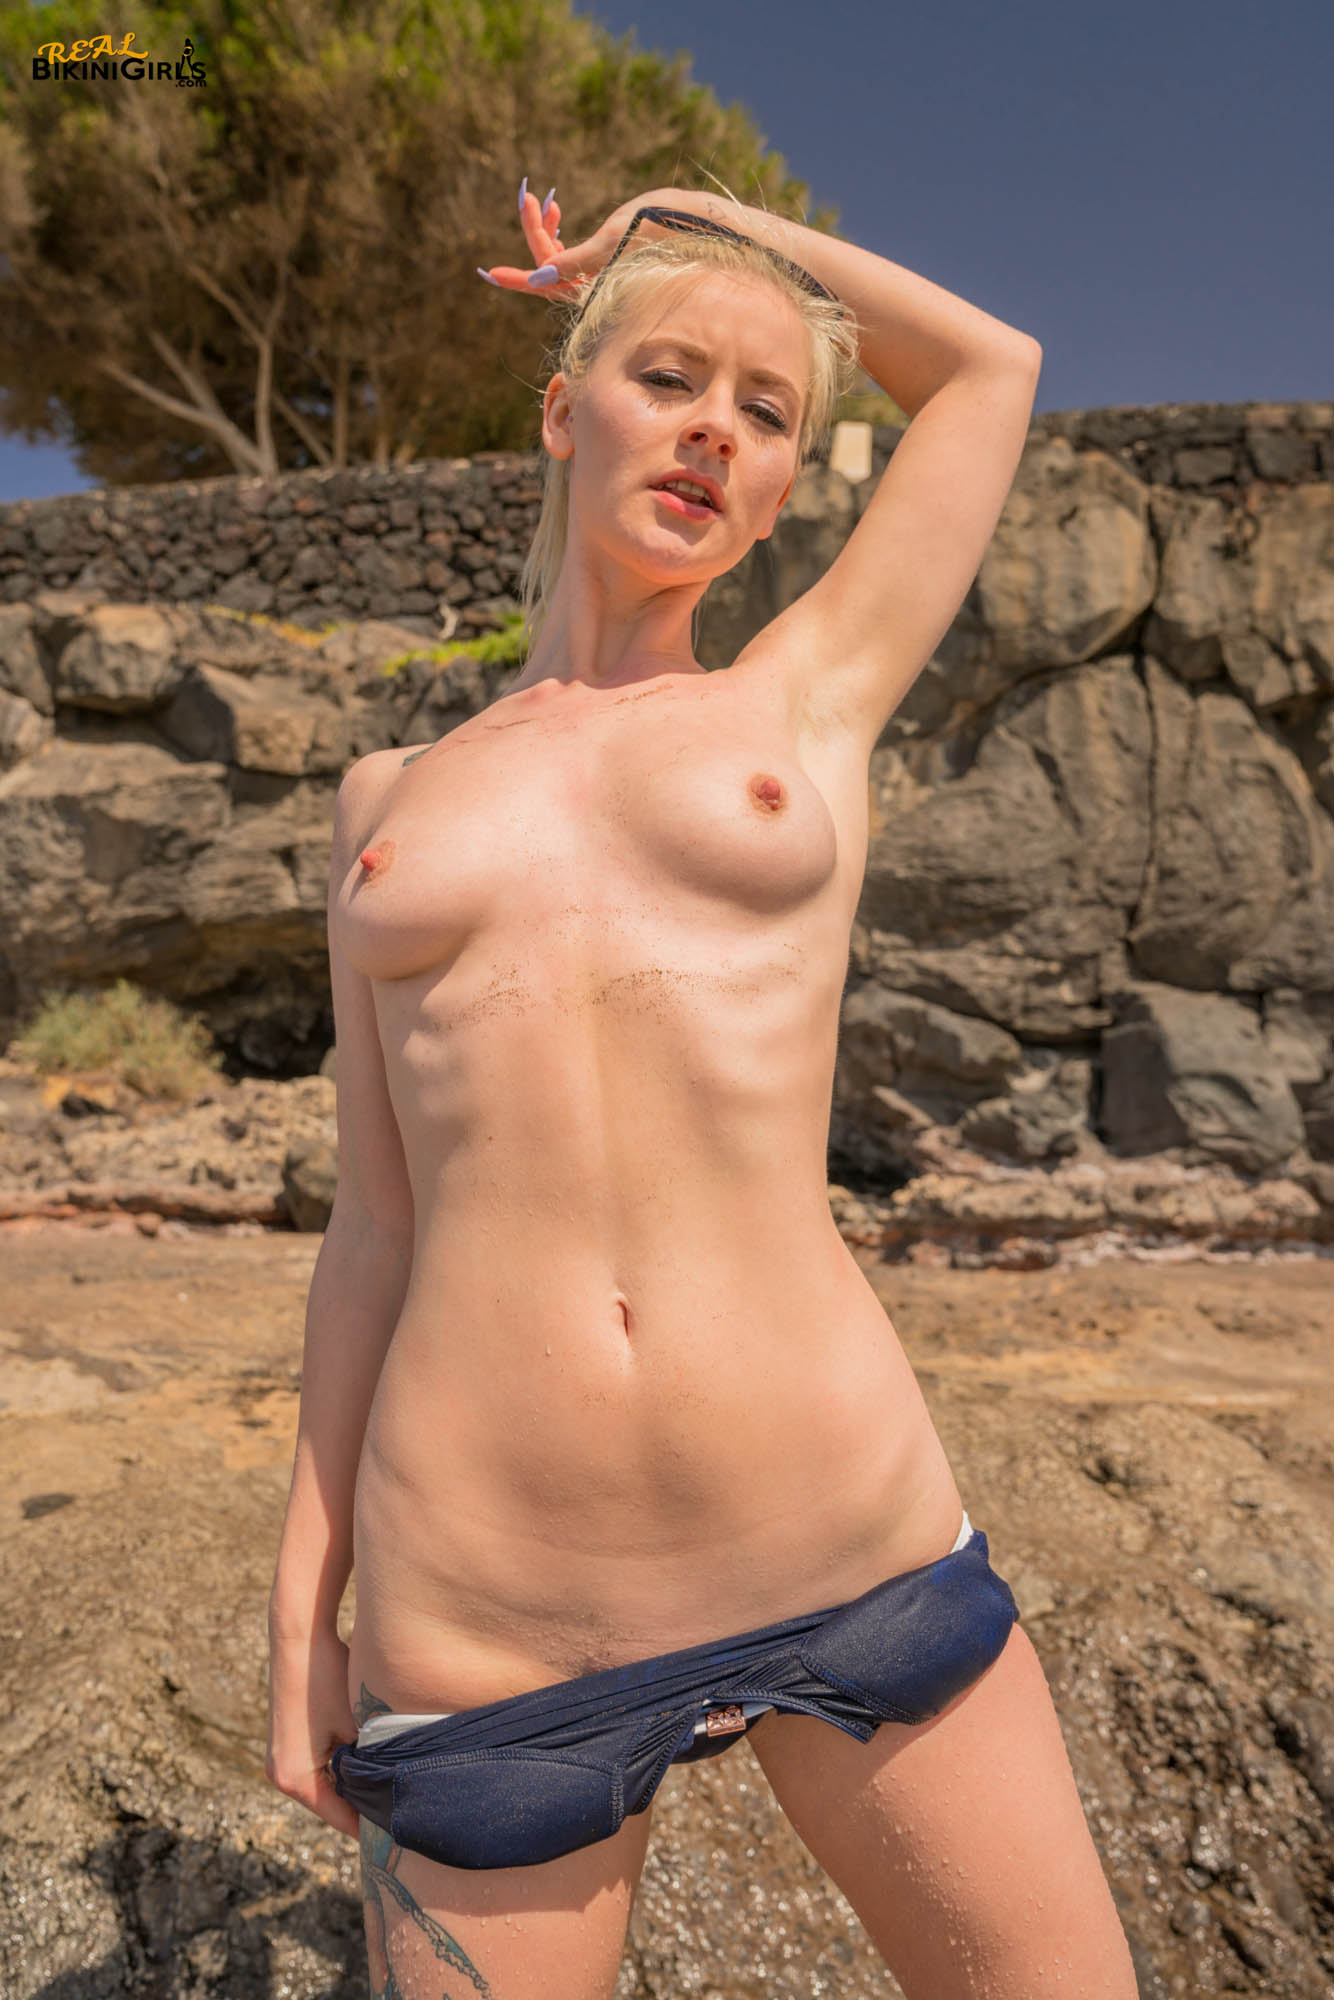 sexy short haired blonde with small tits having fun during beach vacation #1